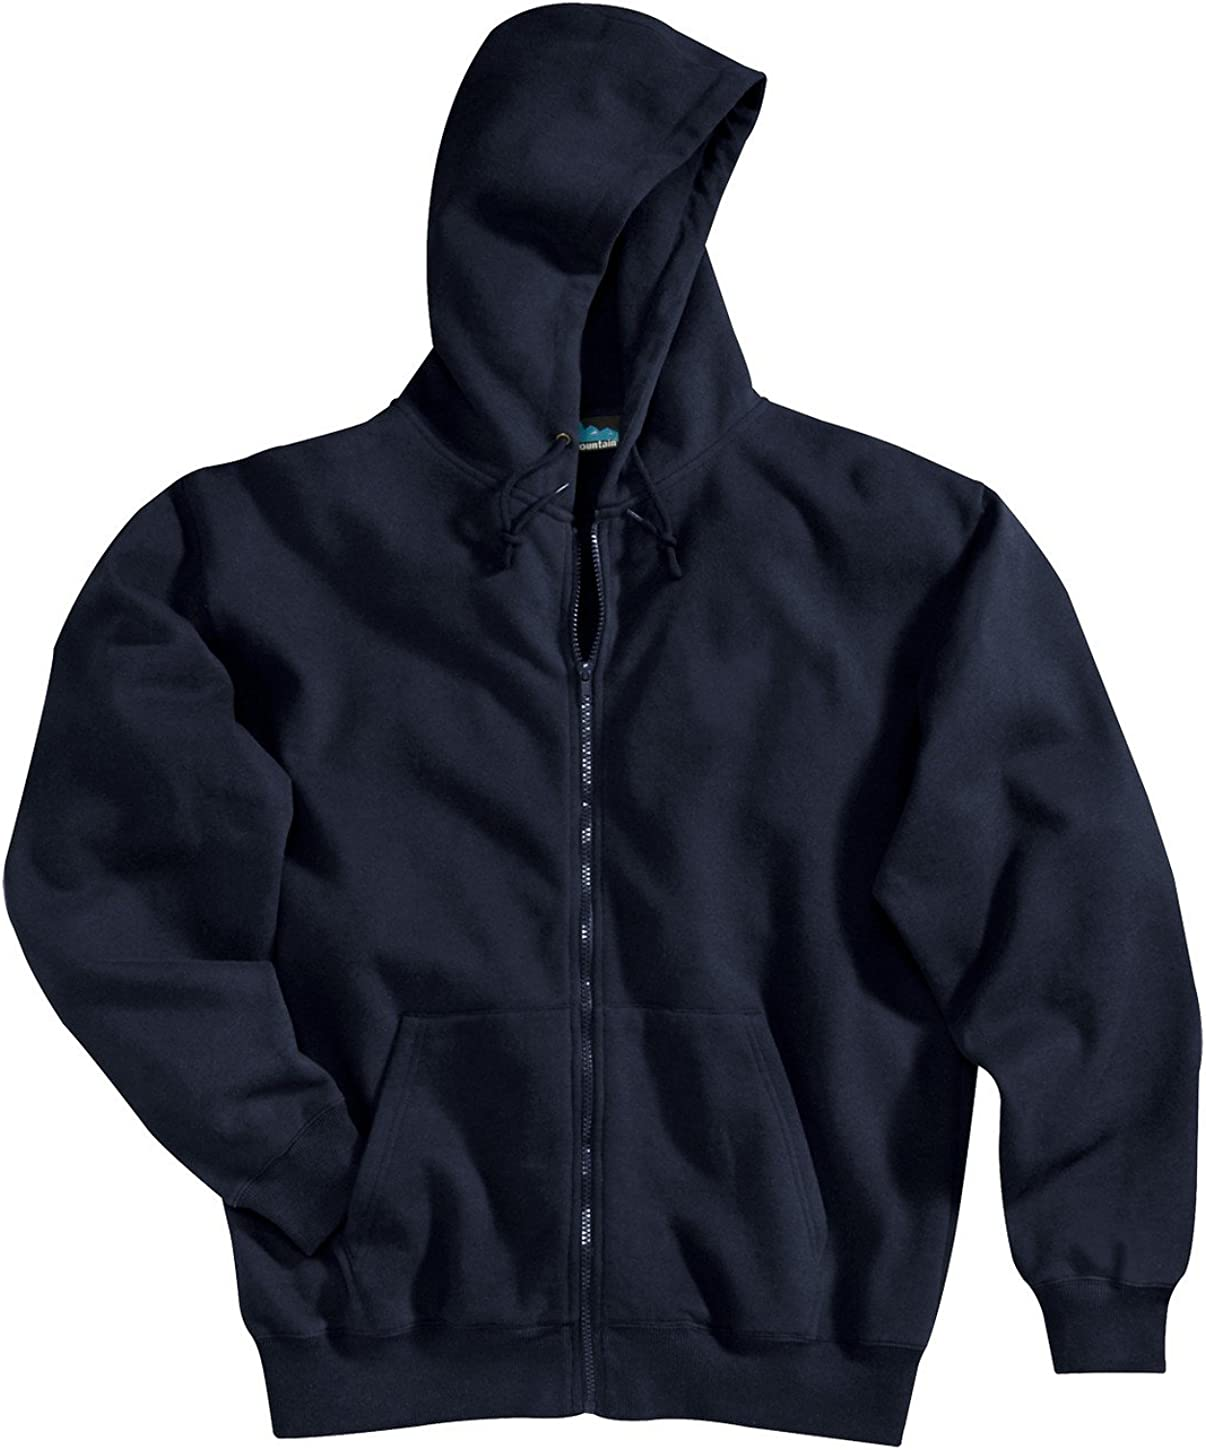 Tri-mountain Cotton/poly sueded finish hooded full zip sweatshirt. - NAVY - XLT